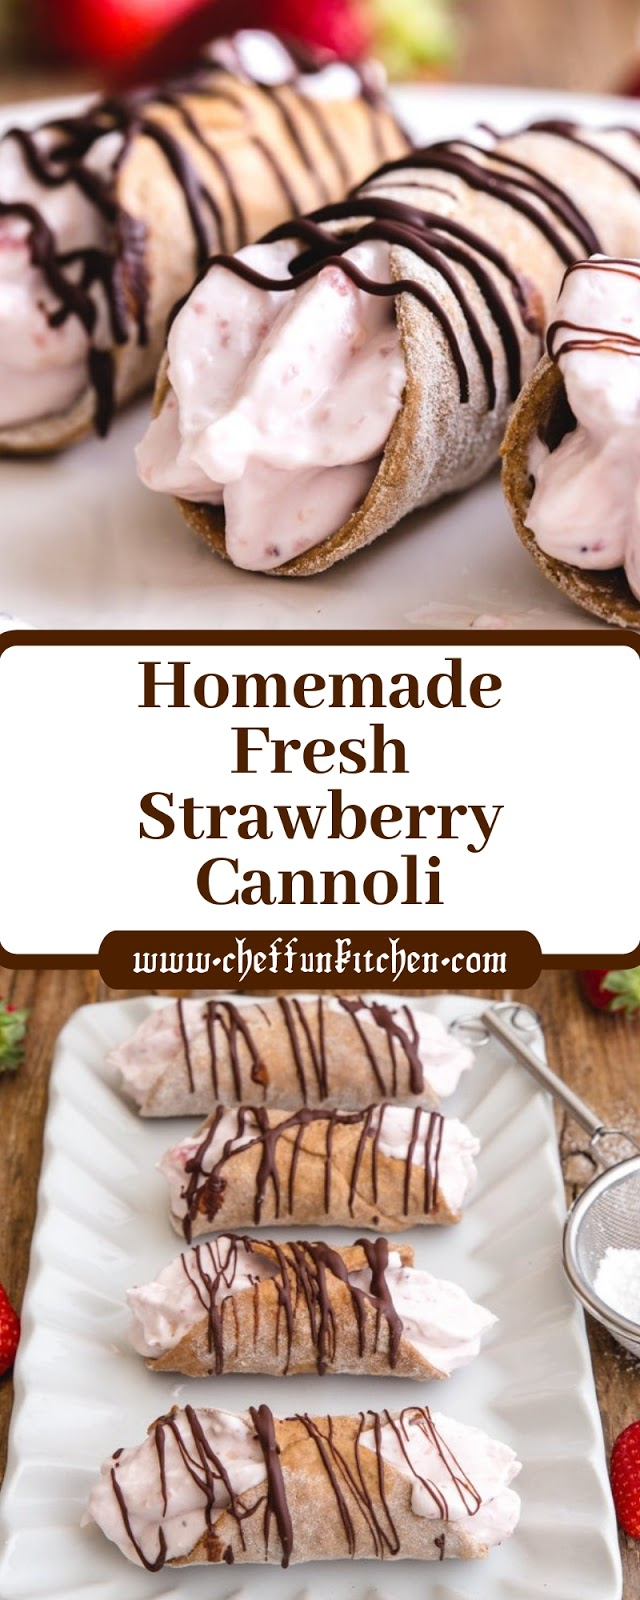 Homemade Fresh Strawberry Cannoli